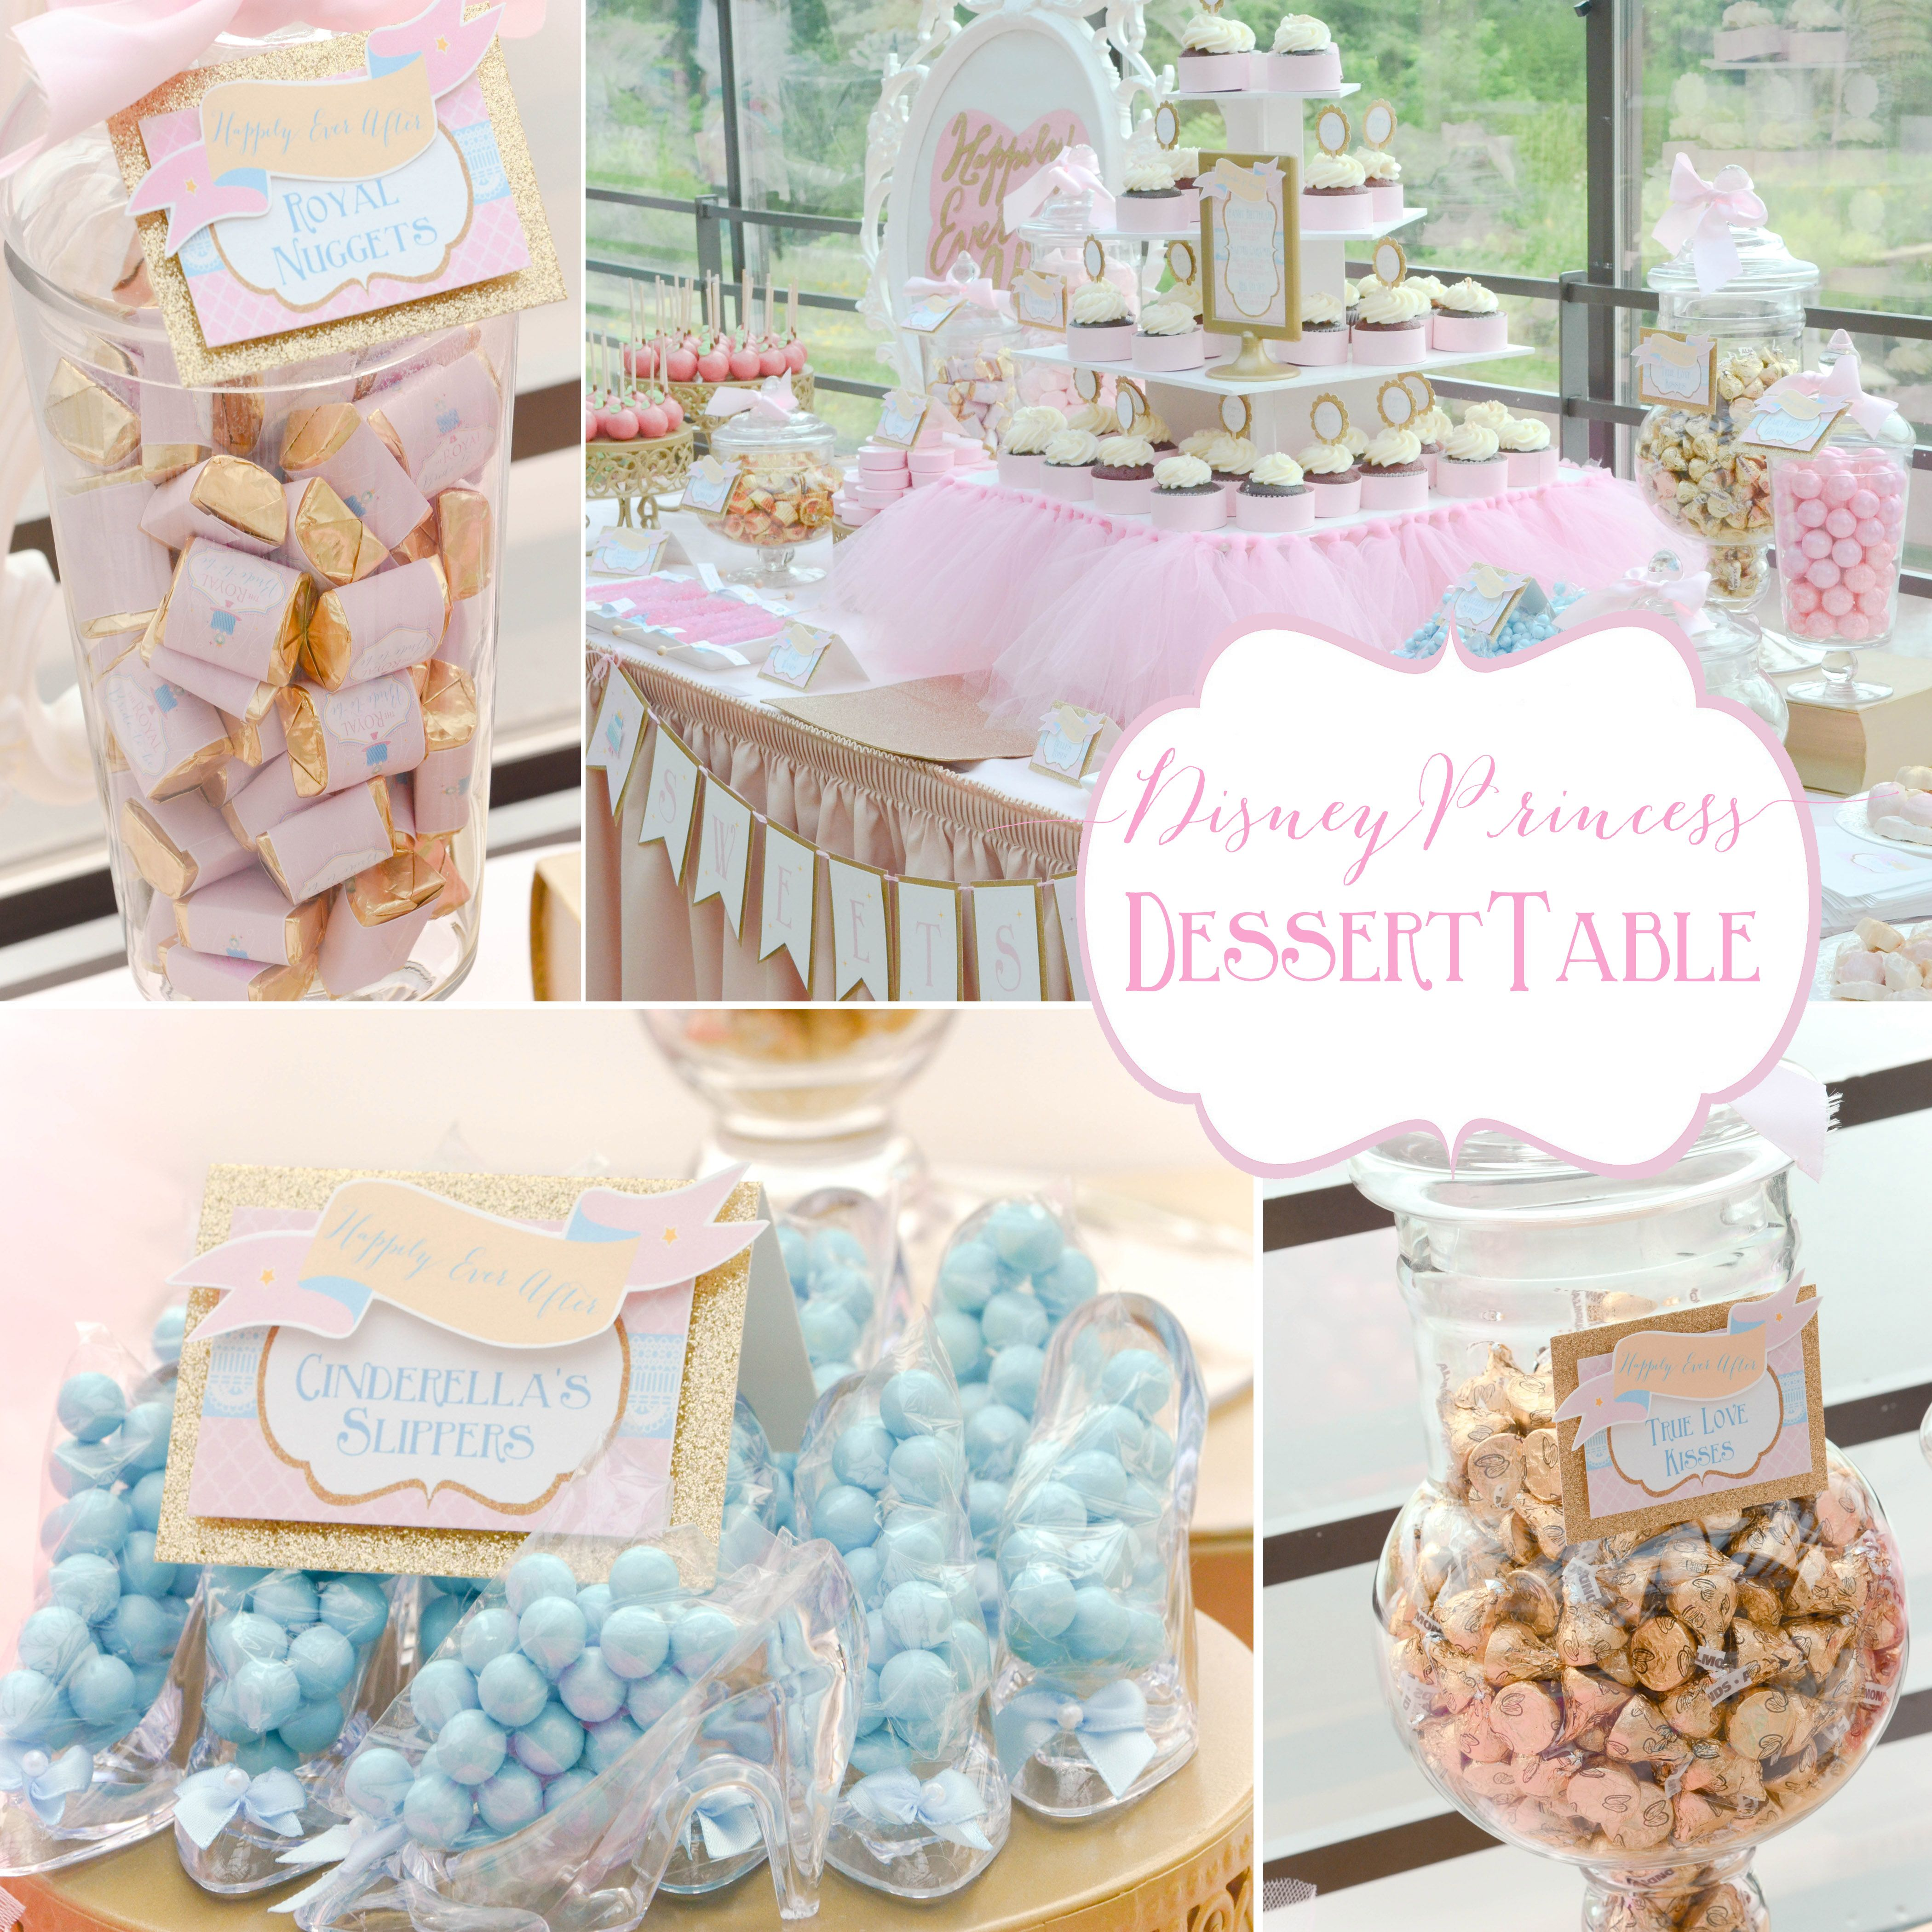 Happily Ever After Princess Party Desssert Table Candy Table Ideas Disney Princes Bridal Shower Desserts Table Bridal Shower Candy Bridal Shower Desserts